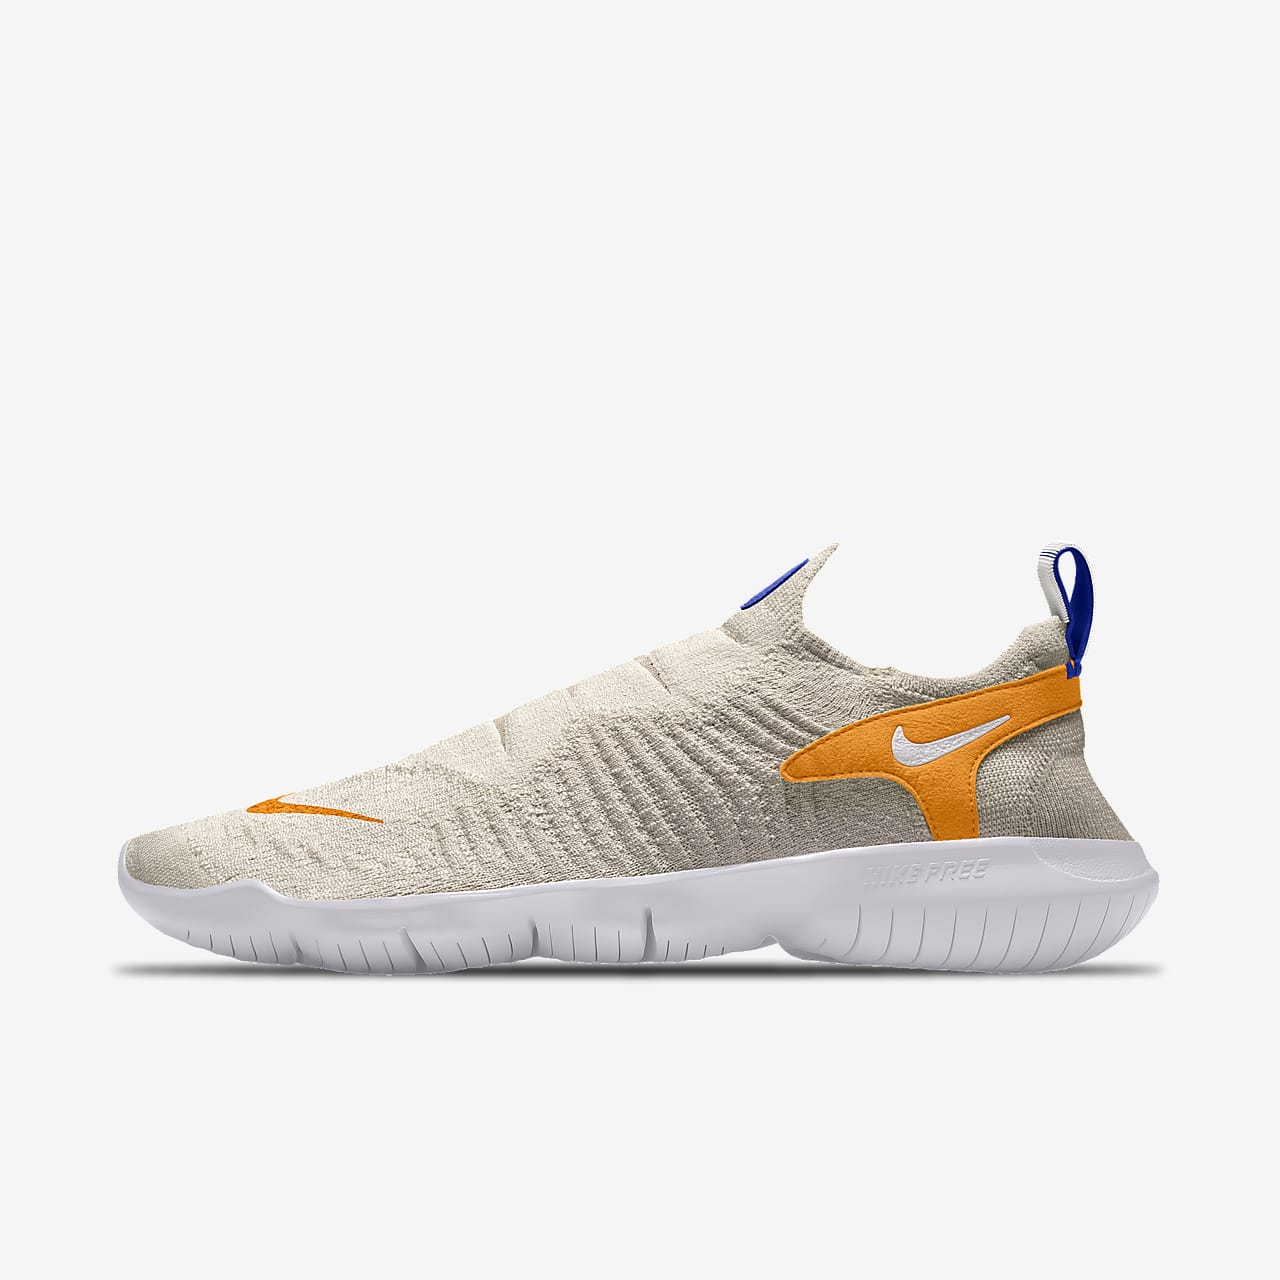 Nike Free RN Flyknit 3.0 By You Custom Men's Running Shoe